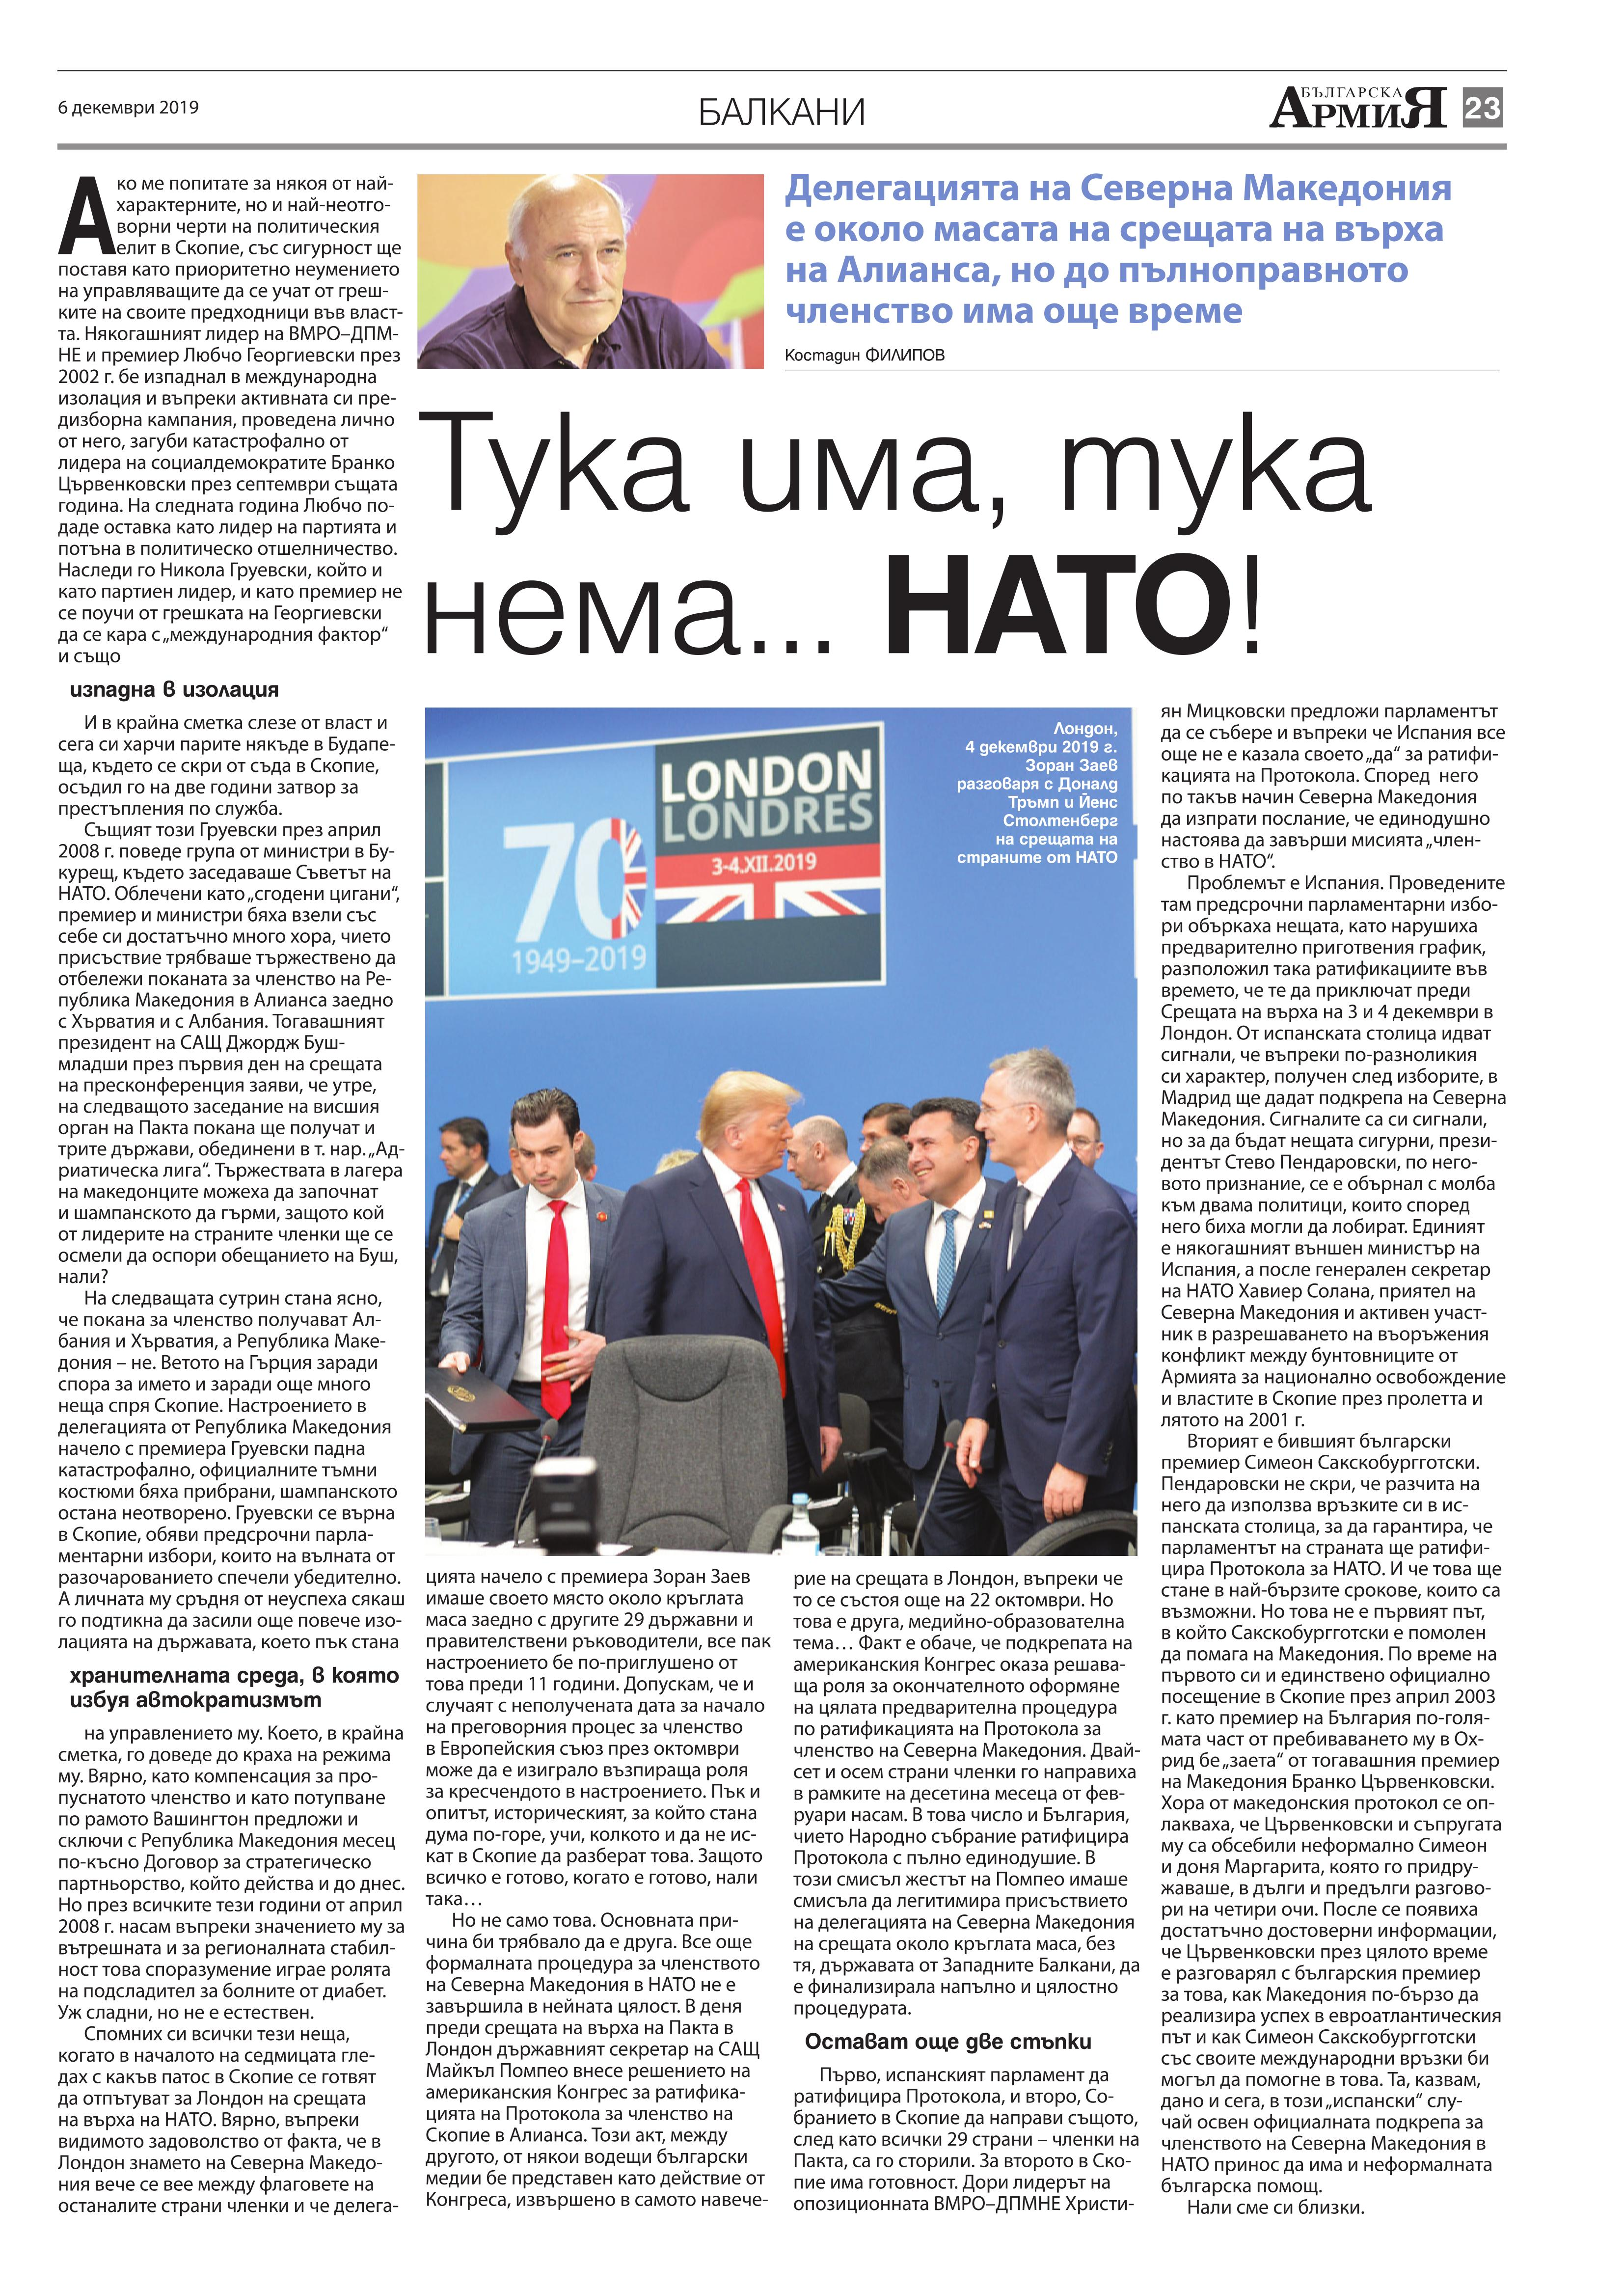 https://armymedia.bg/wp-content/uploads/2015/06/23.page1_-118.jpg